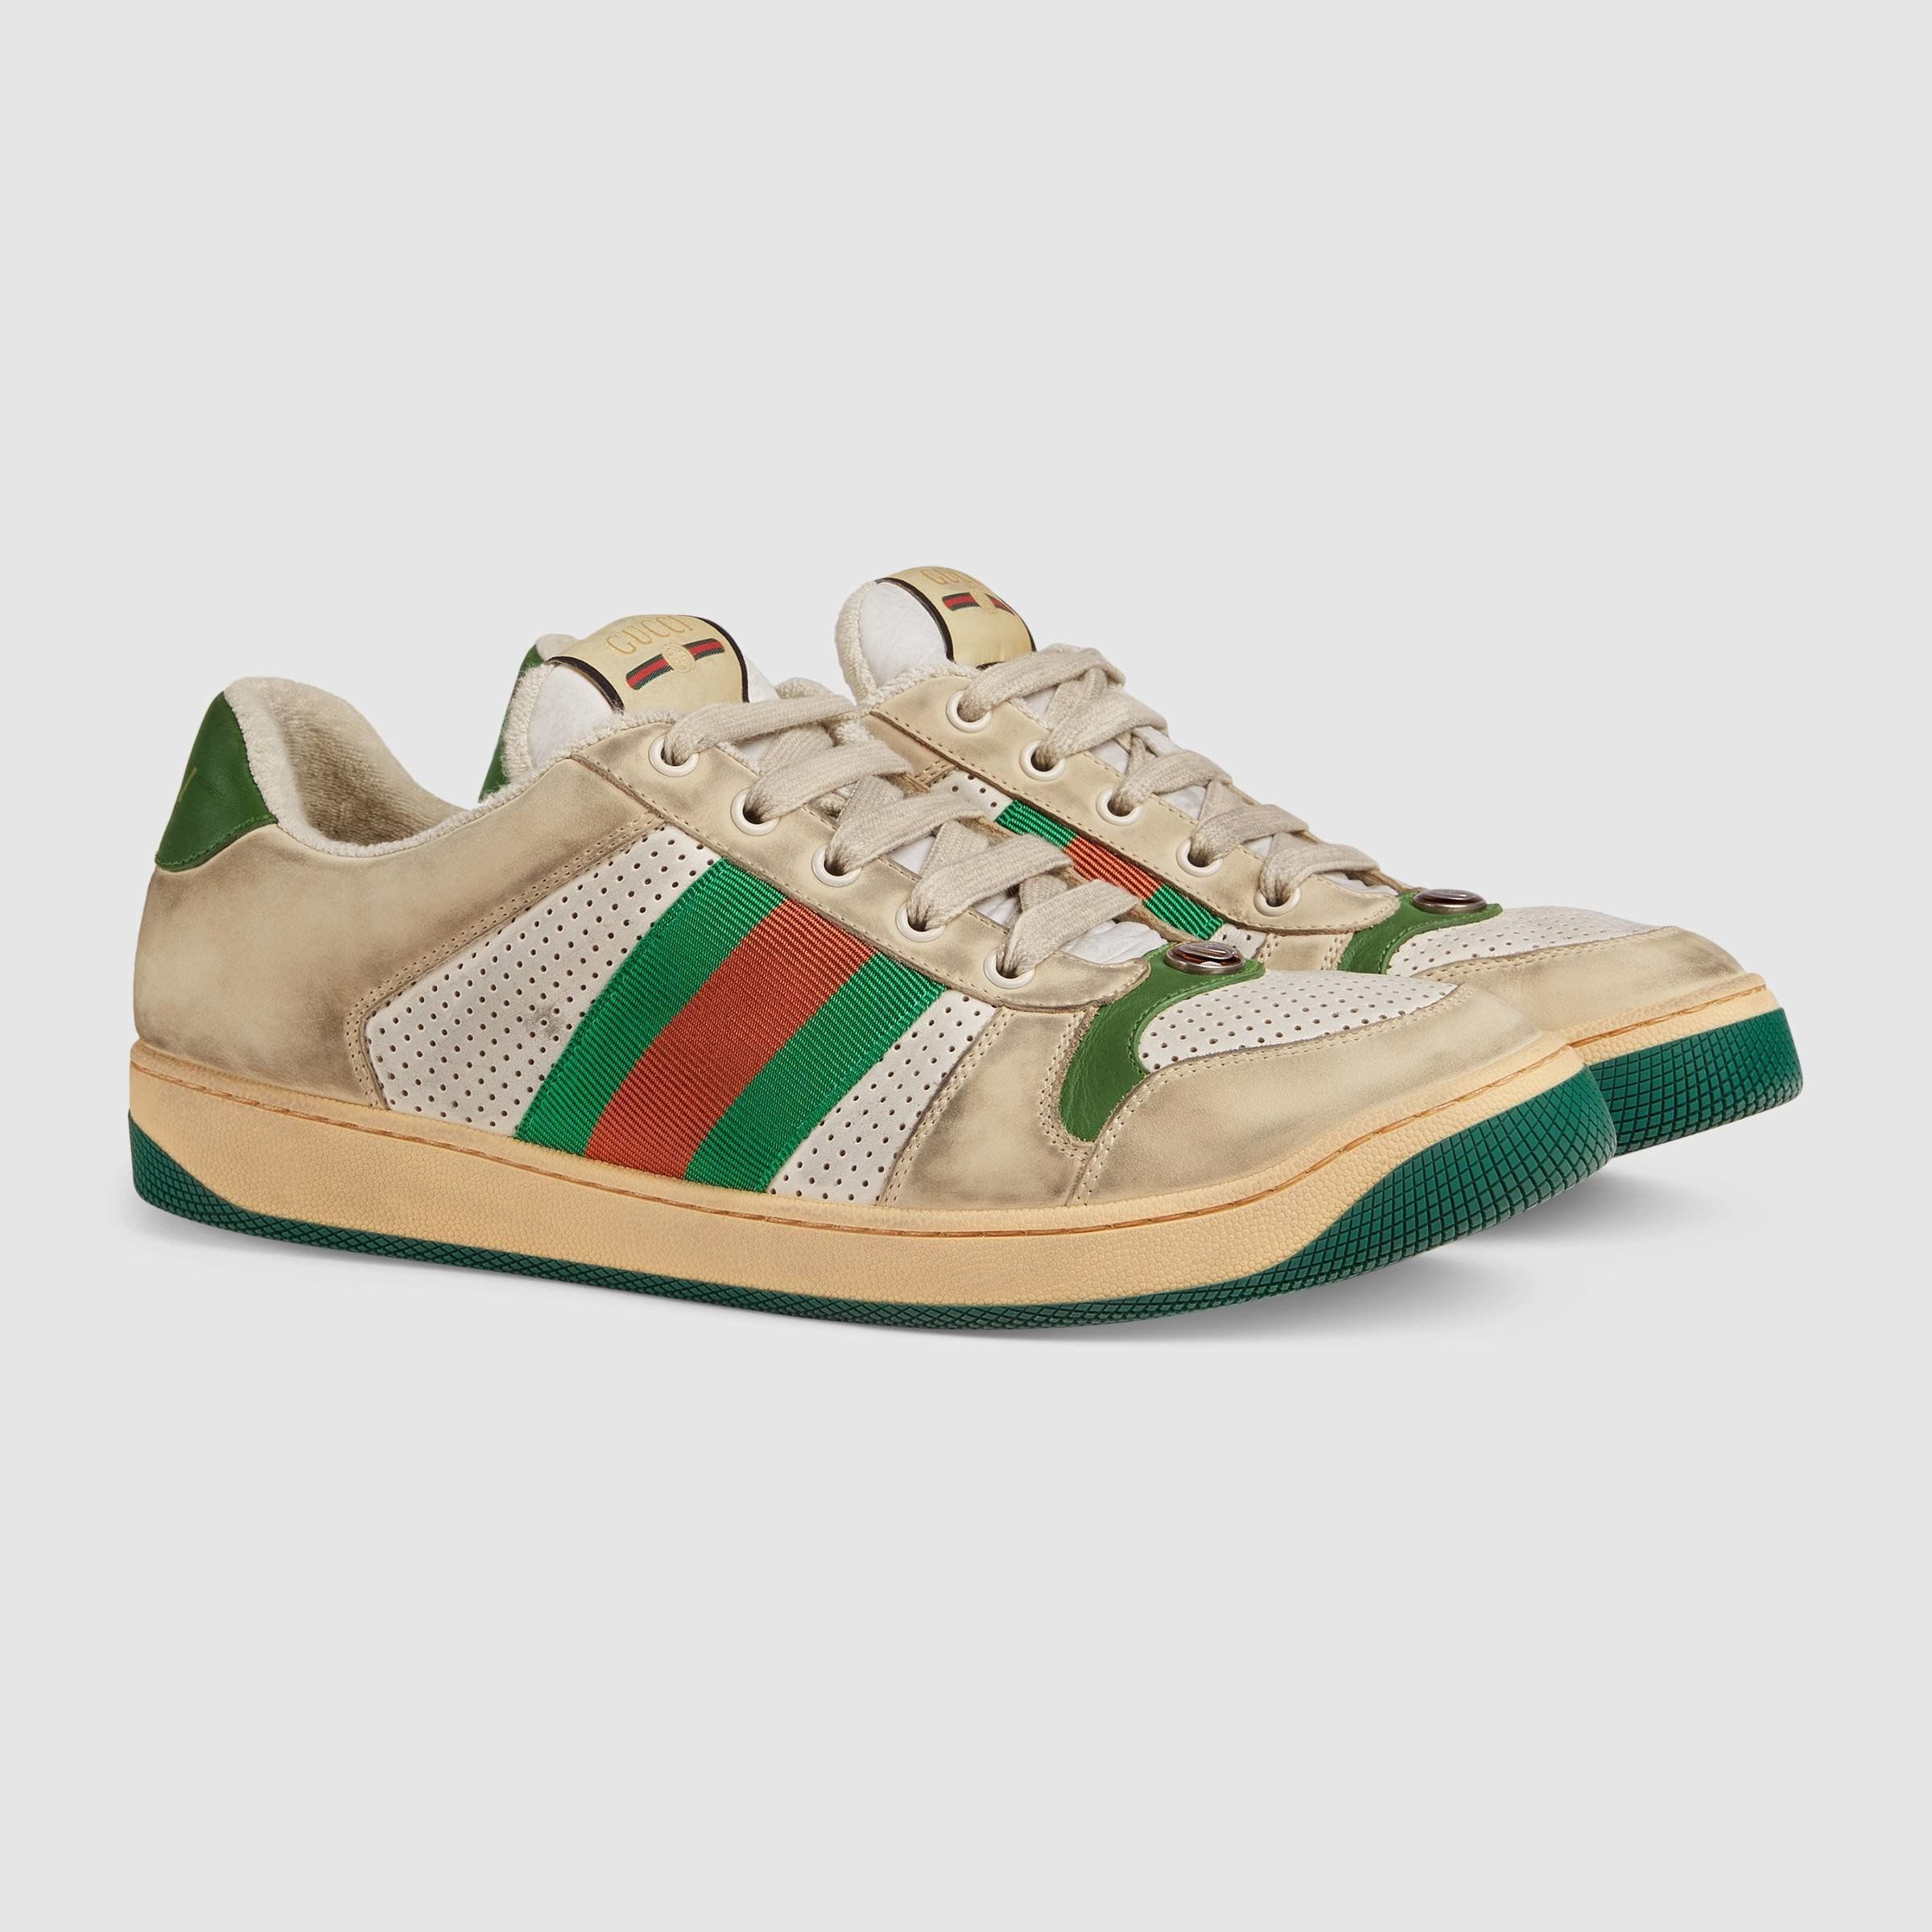 Gucci Wants You Pay Almost $900 For Filthy-Looking Sneakers